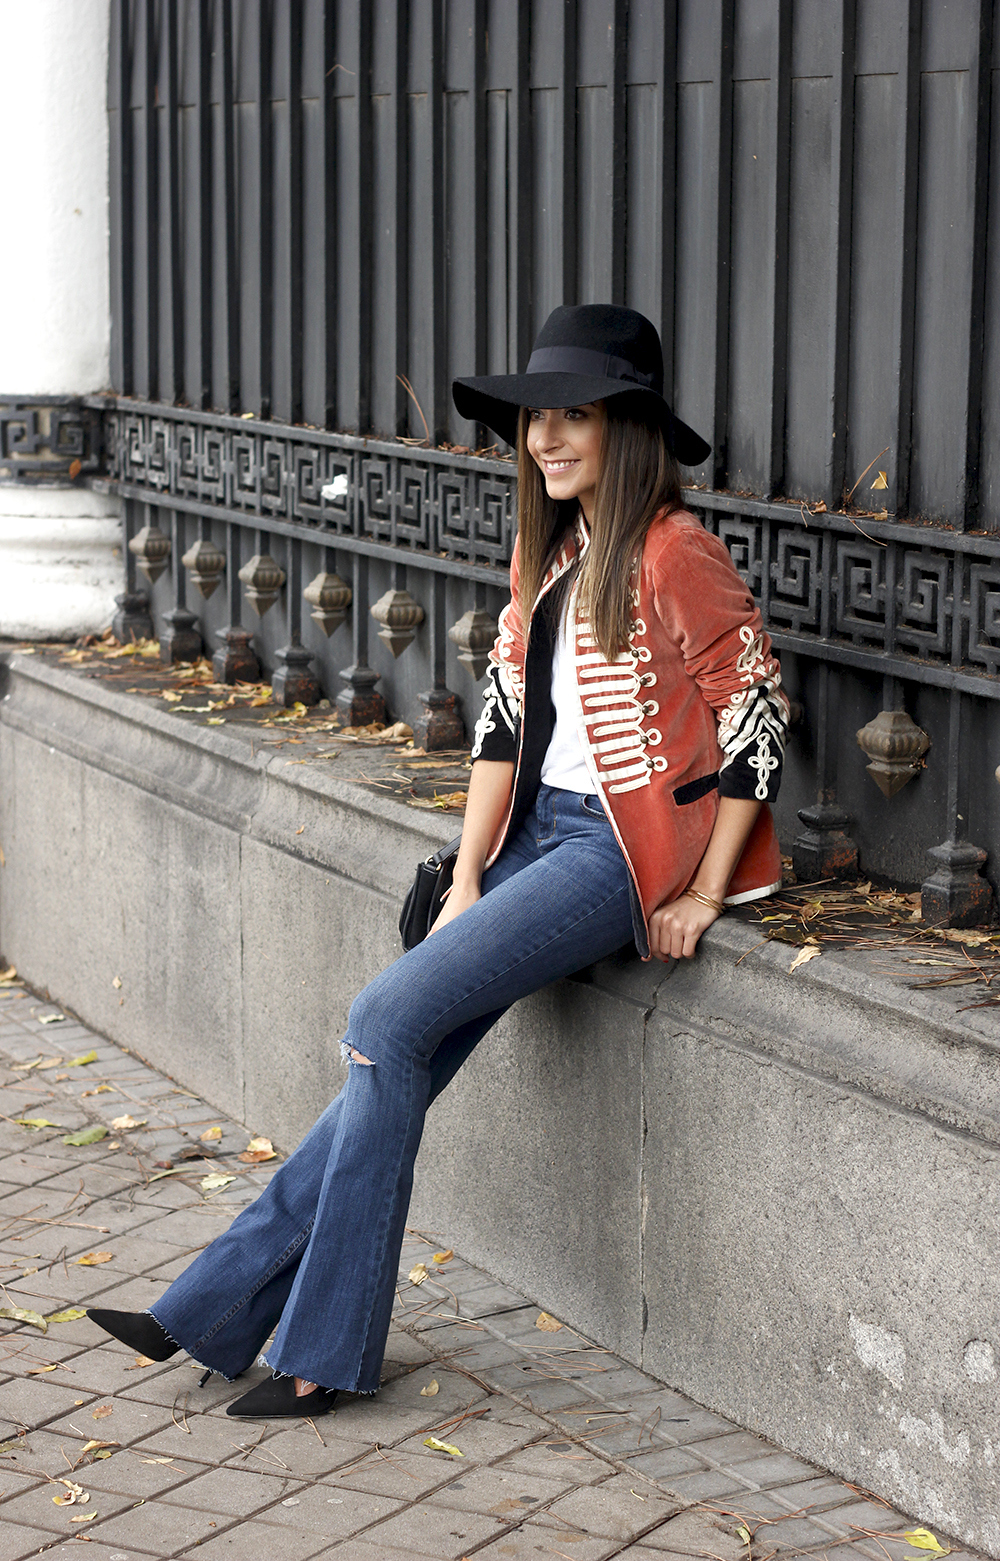 velvet jacket jeans hat rainny day heels accessories outfit style fashion15